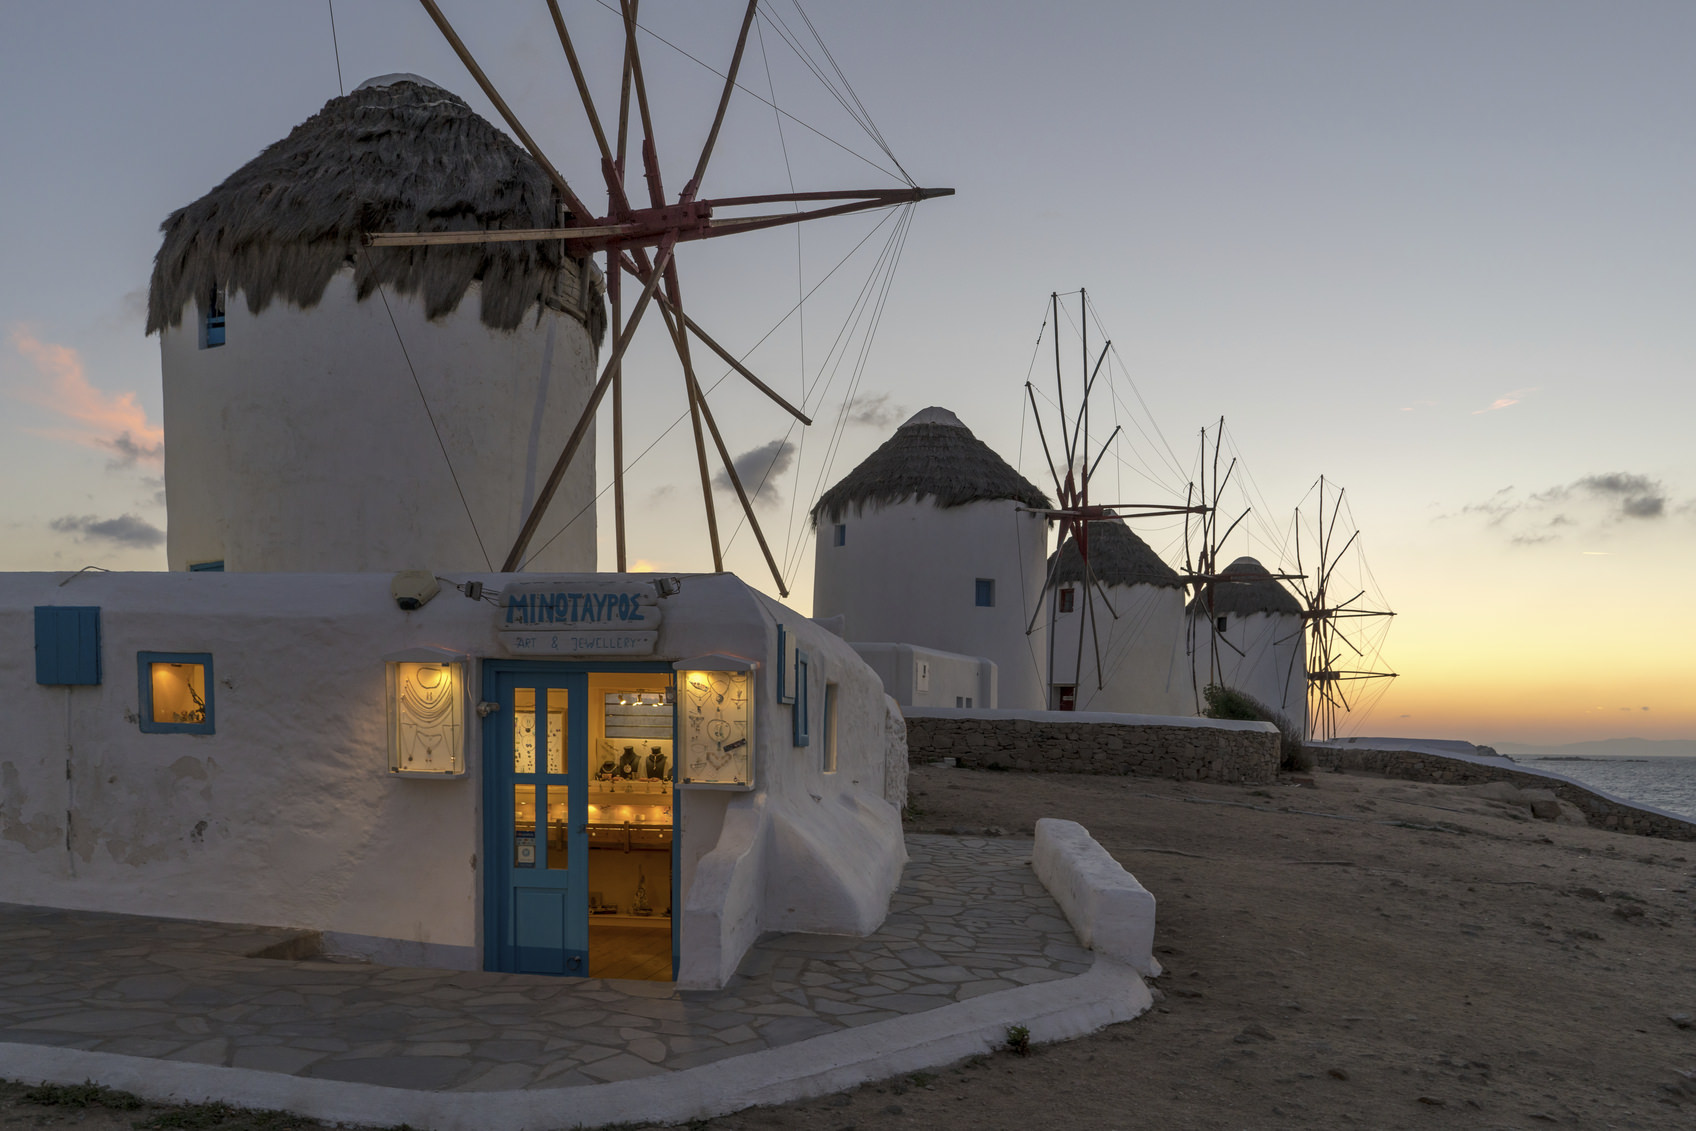 Mykonos Island, Greece - October 14, 2015: Mykonos is a travel location of mediterraneon cruise tour, where almost all the houses are painted in white and doors, windows and stairs are in blue. There stands windmills on the hill facing the sea, which look apparently imitations but fascinate tourists.